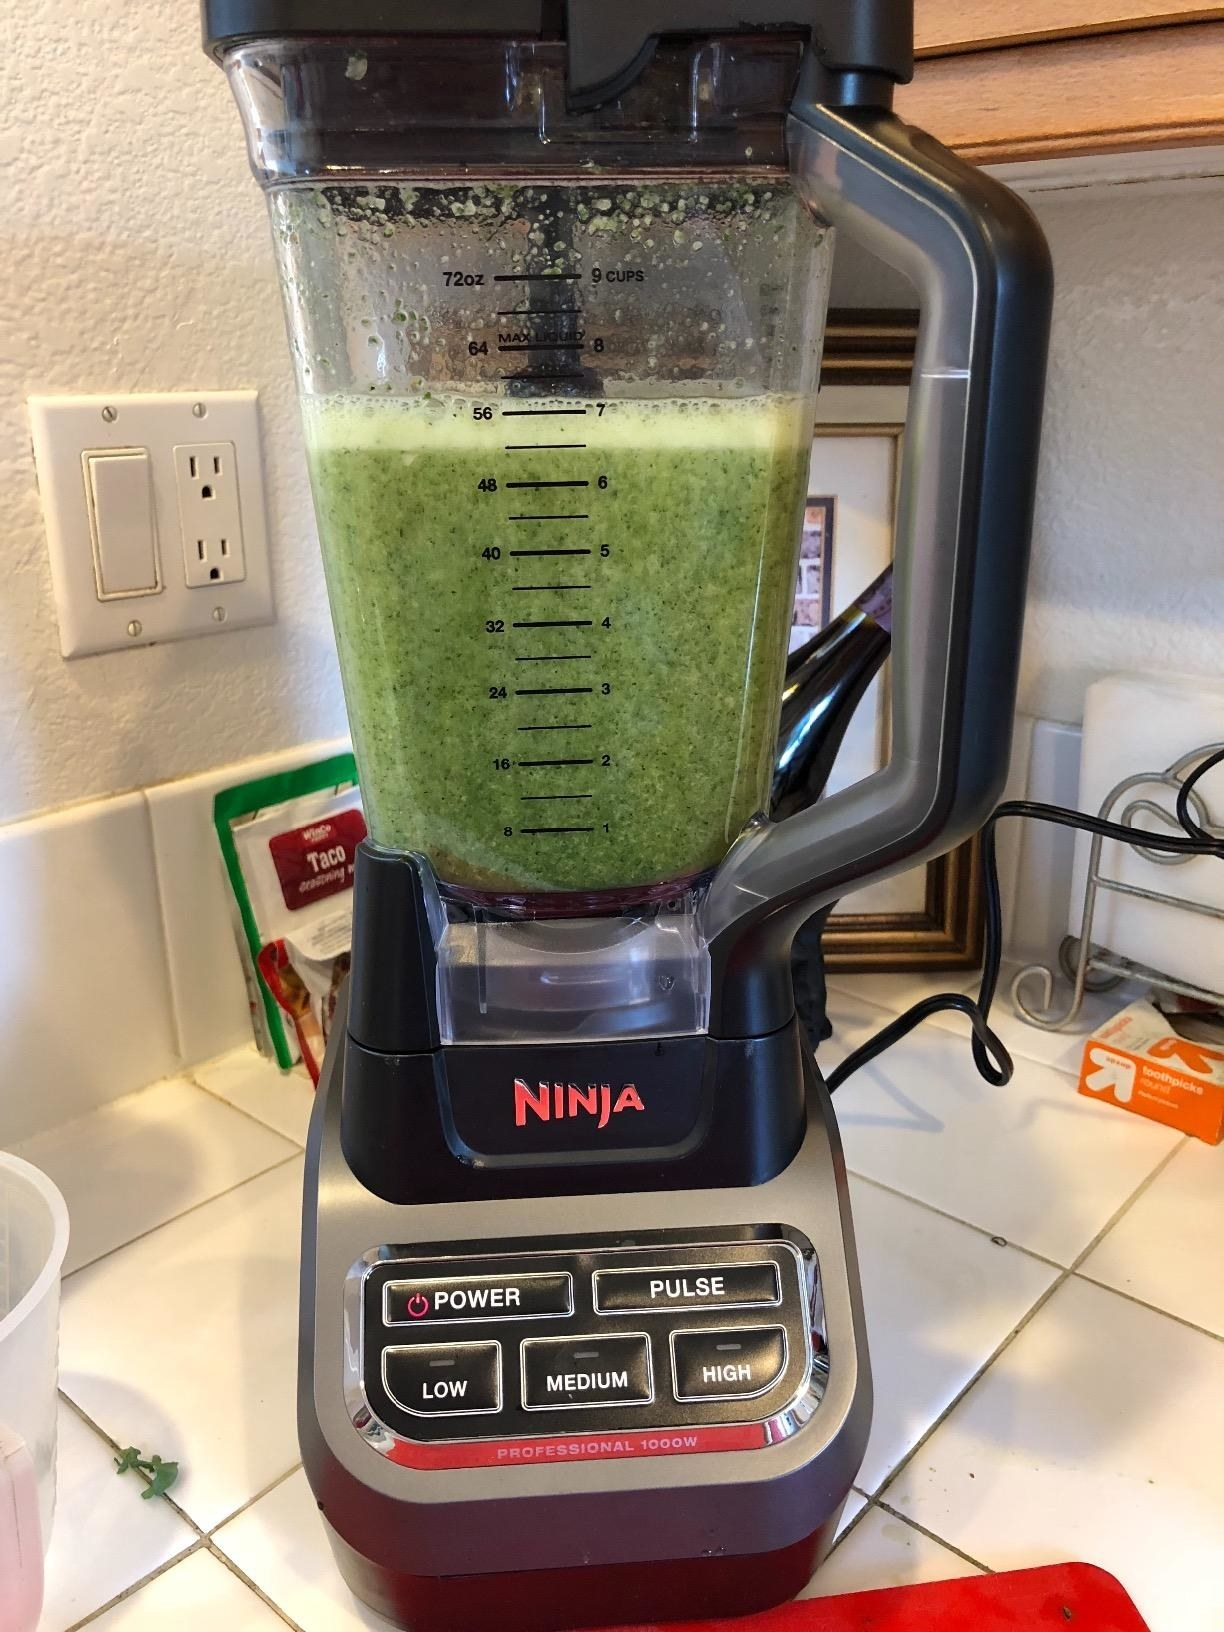 A Ninja blender with a green smoothie in the jar.